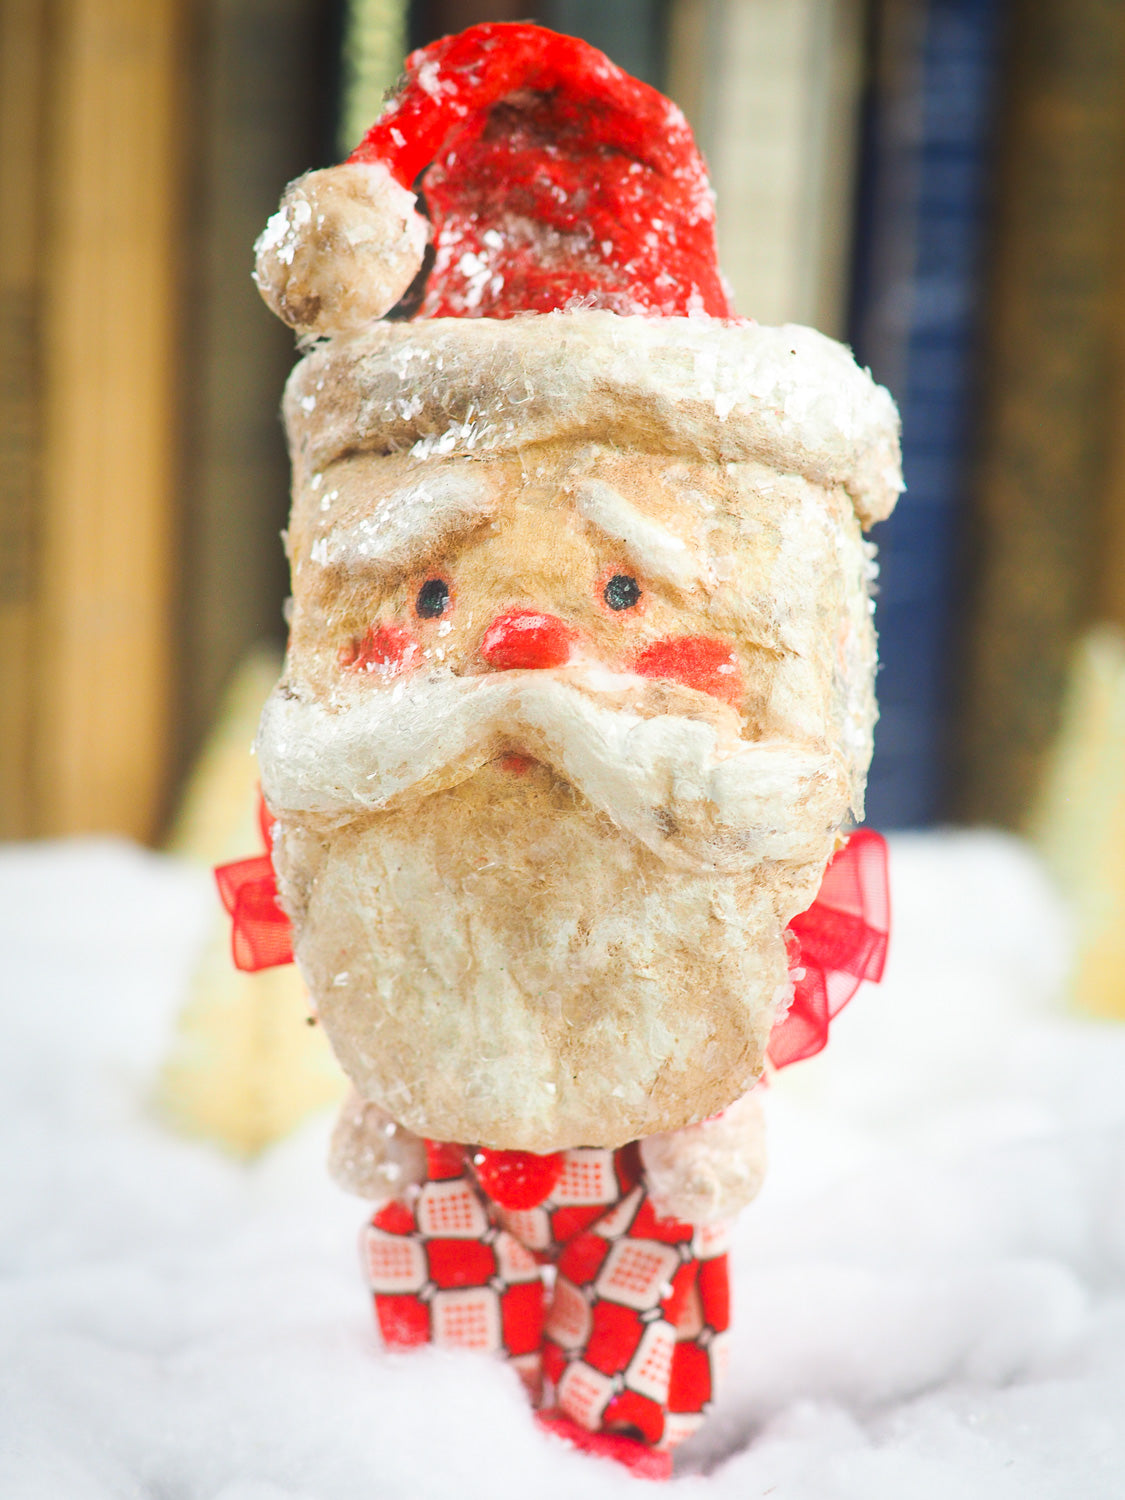 Handmade Christmas tree ornament Santa Claus doll by Danita. Whimsical folk art spun cotton home decor figurine for Holiday season, covered in vintage mica.